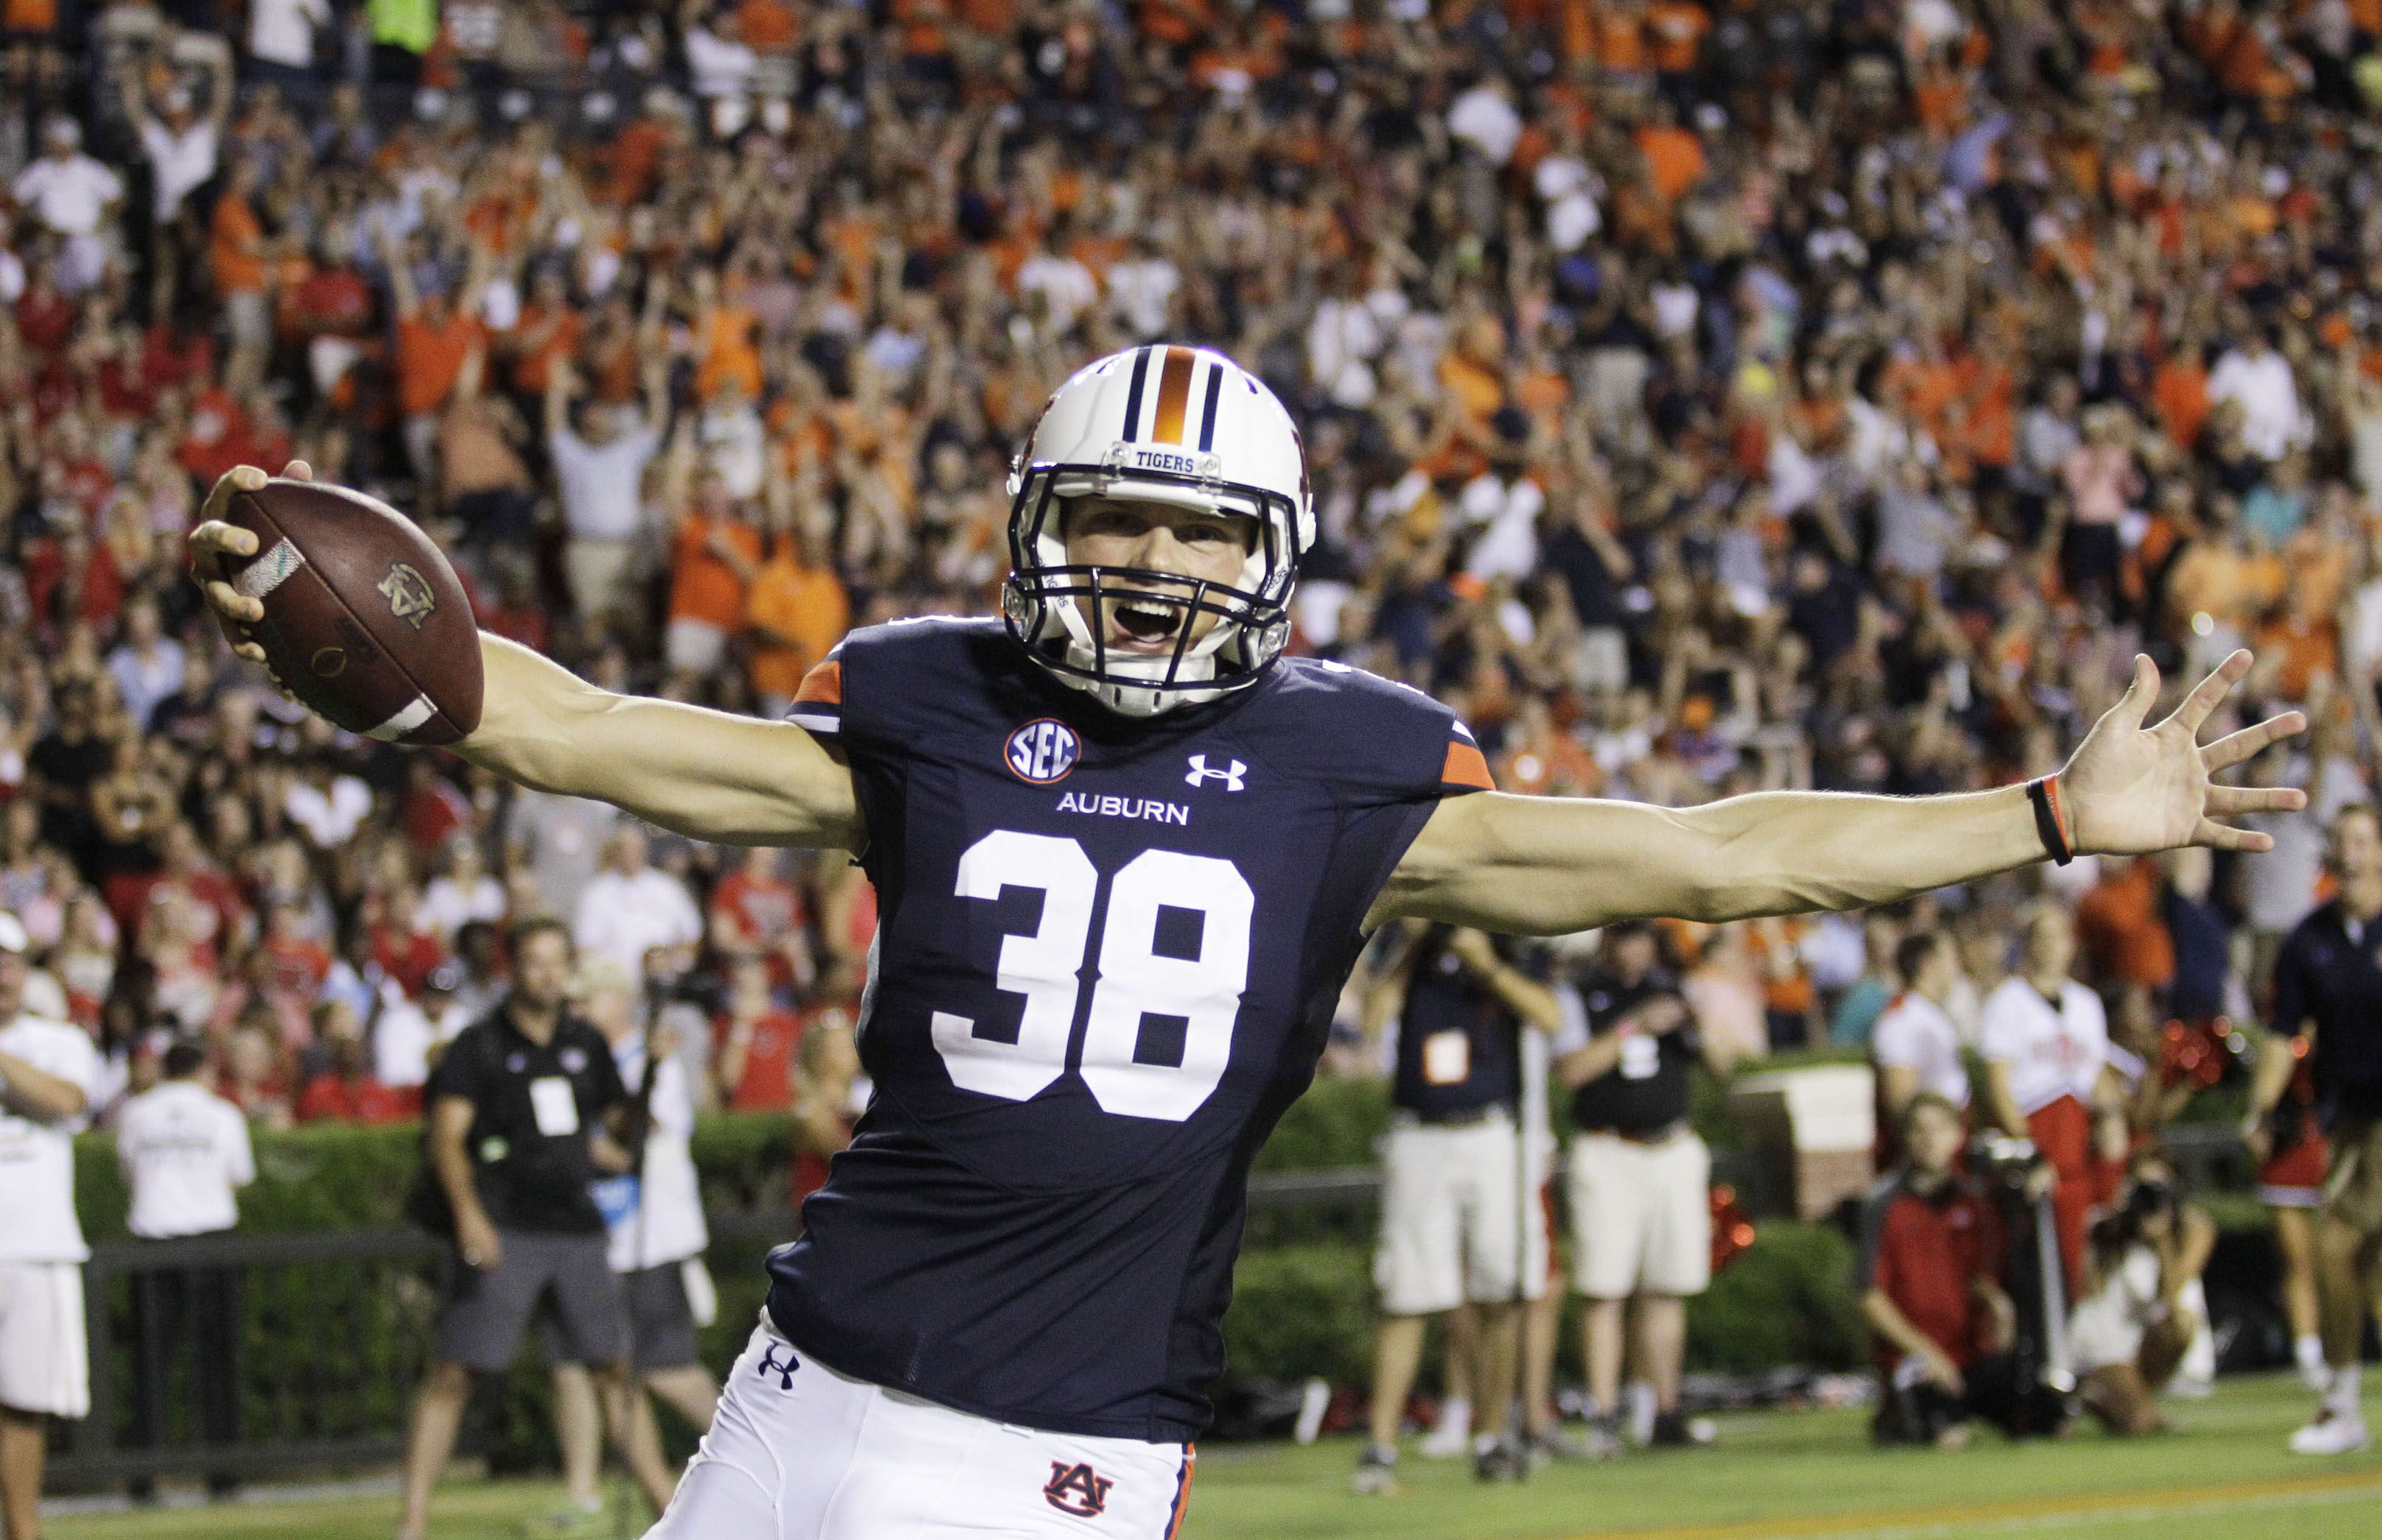 Realtime Auburn Tigers Football Schedule on SECSportscom